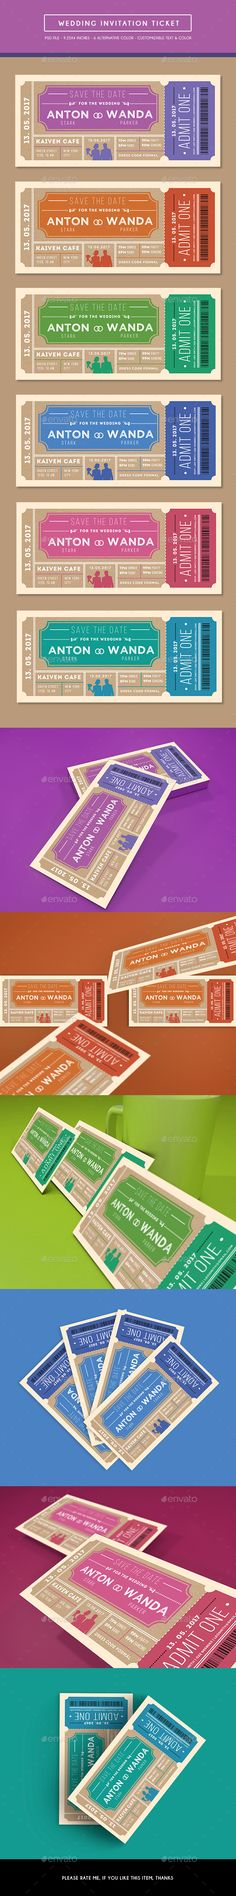 Wedding Invitation Ticket - Weddings Cards & Invites